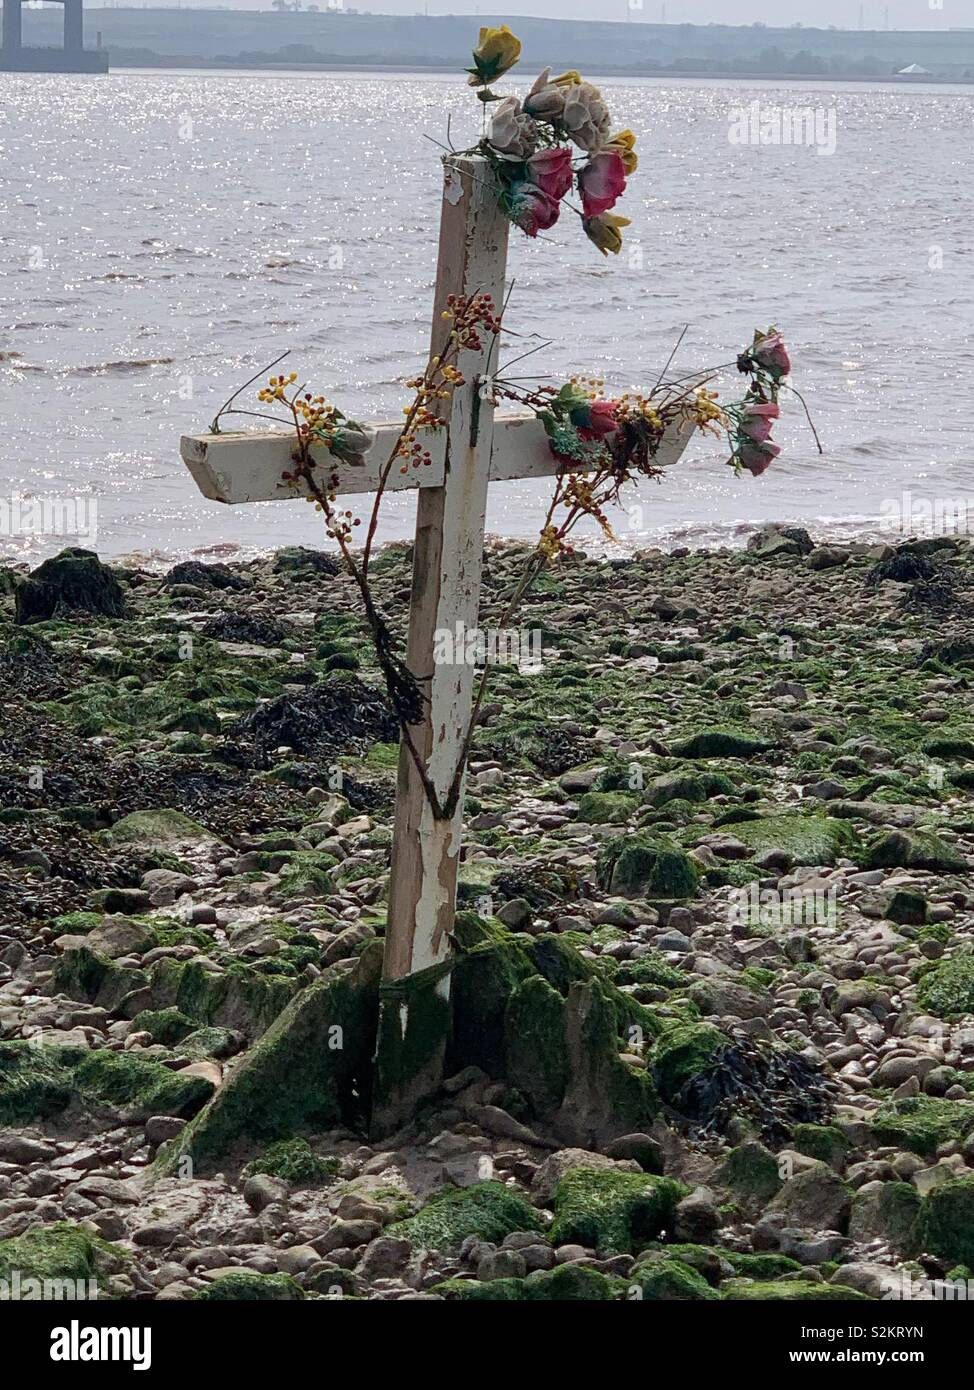 A wooden cross sits in the north mud bank of the River Humber as a memorial to tragic events that have occurred on the river in the past. - Stock Image